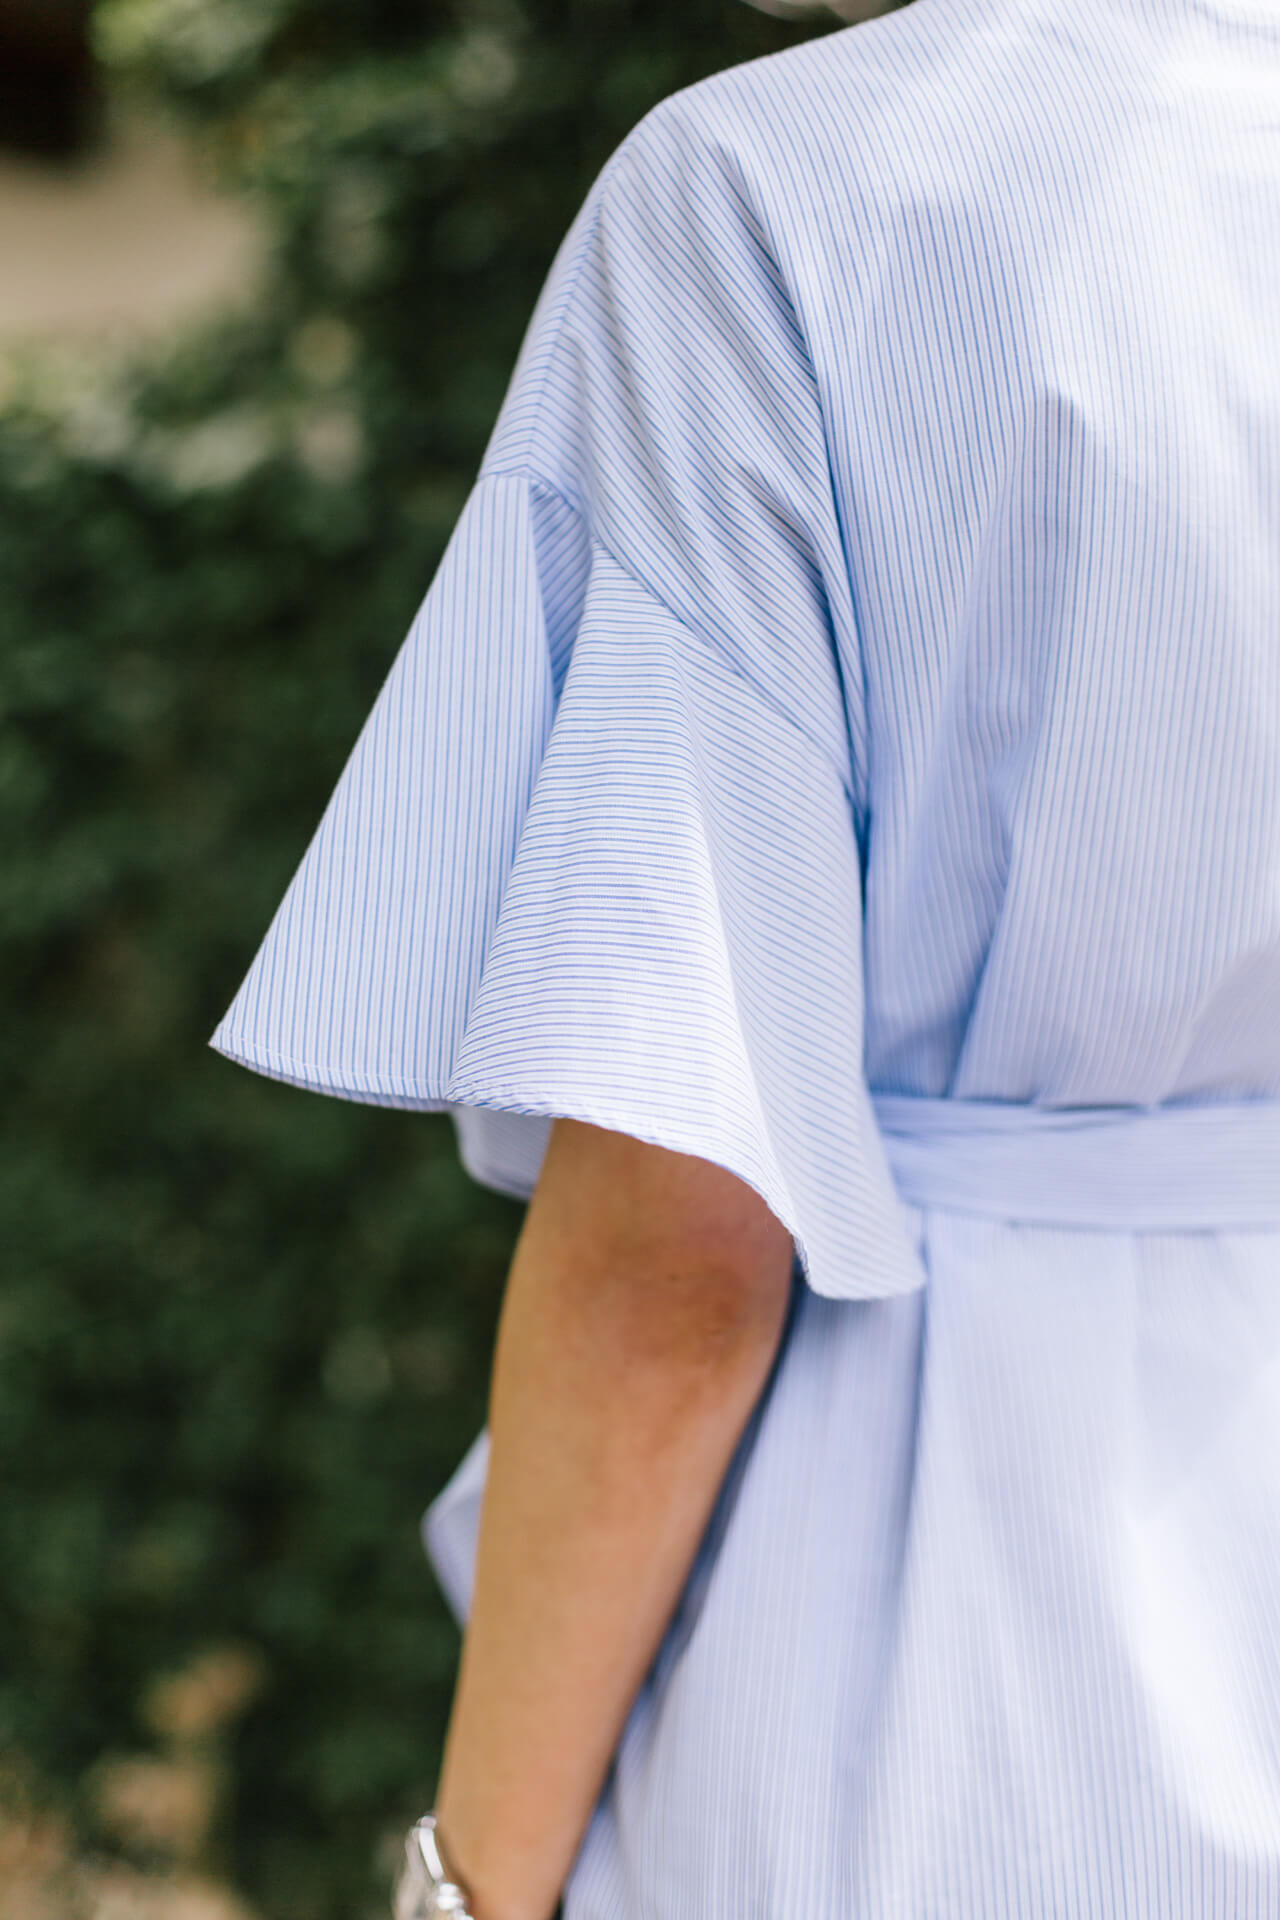 pretty sleeve detail on topshop dress from nordstrom